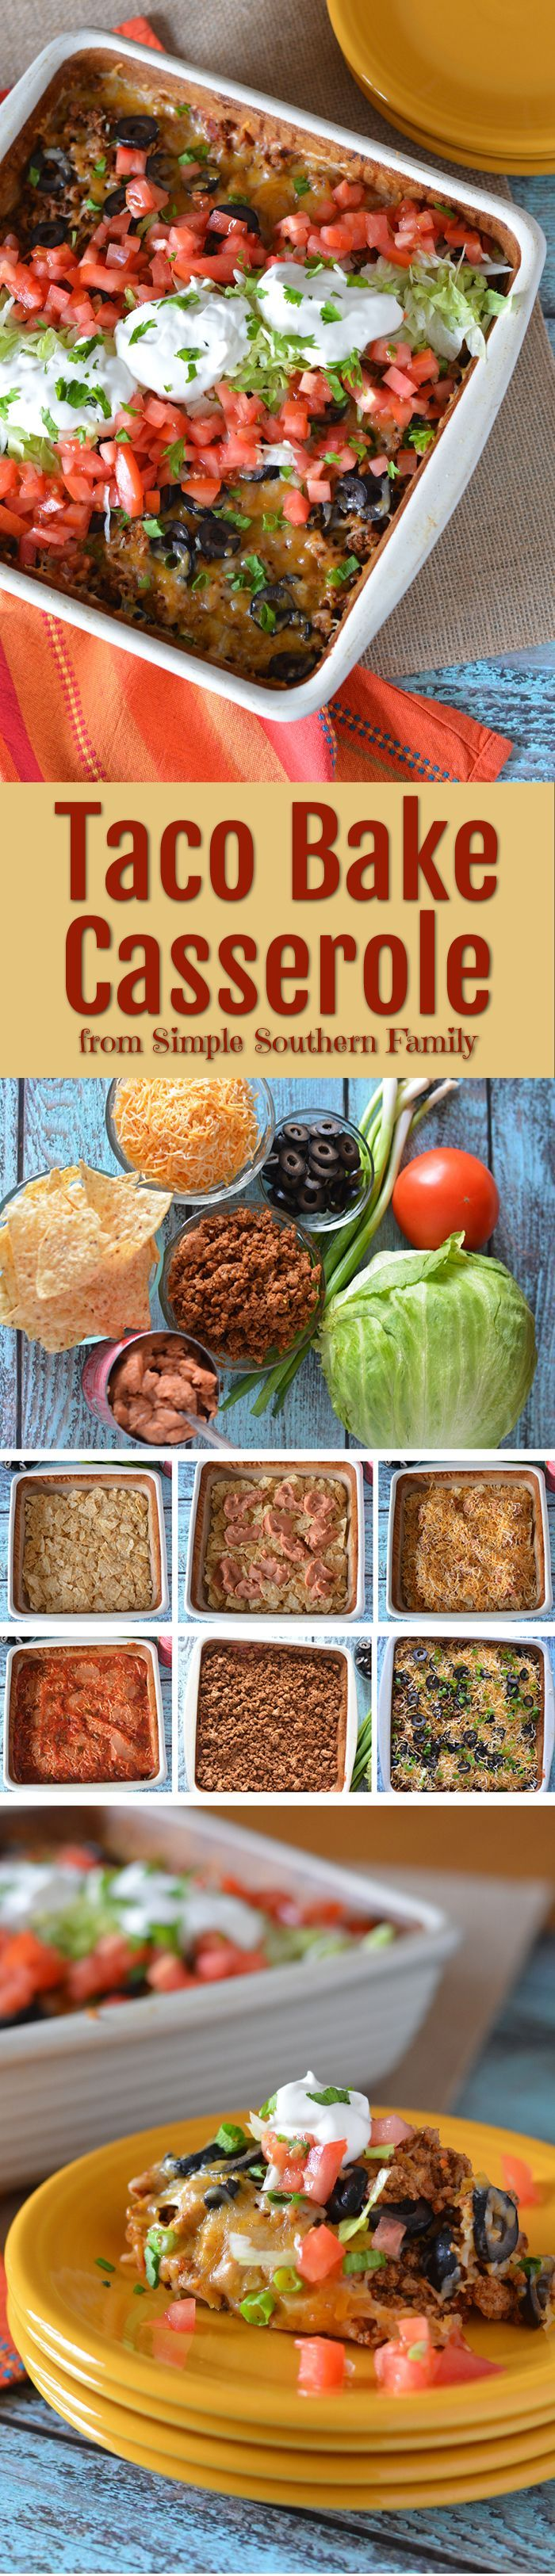 This delicious Taco Bake Casserole will be a family favorite! From Simple Southern Family.